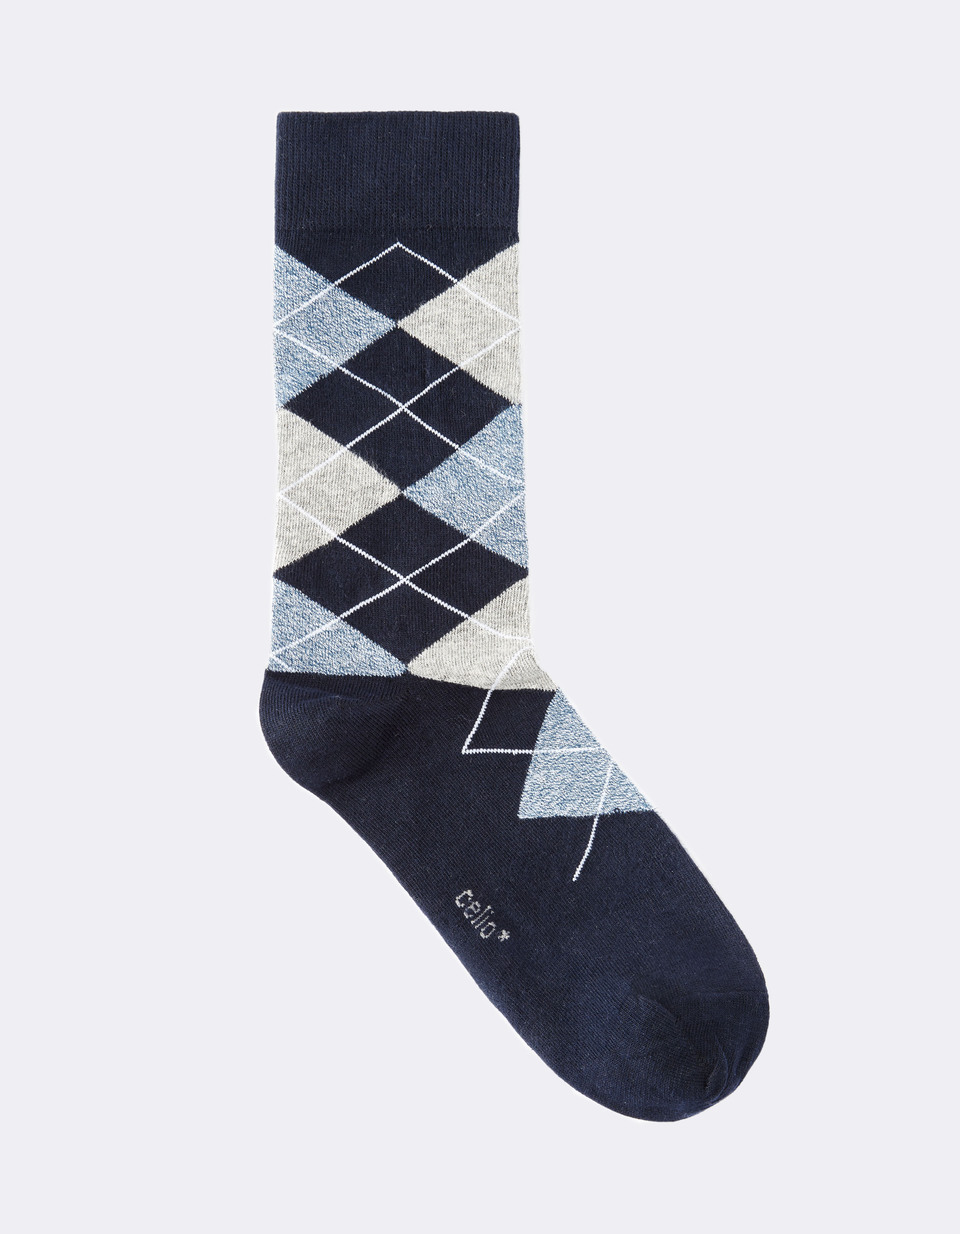 chaussettes fantaisies losanges - MILINGTON_NAVY - Image à plat - Celio France